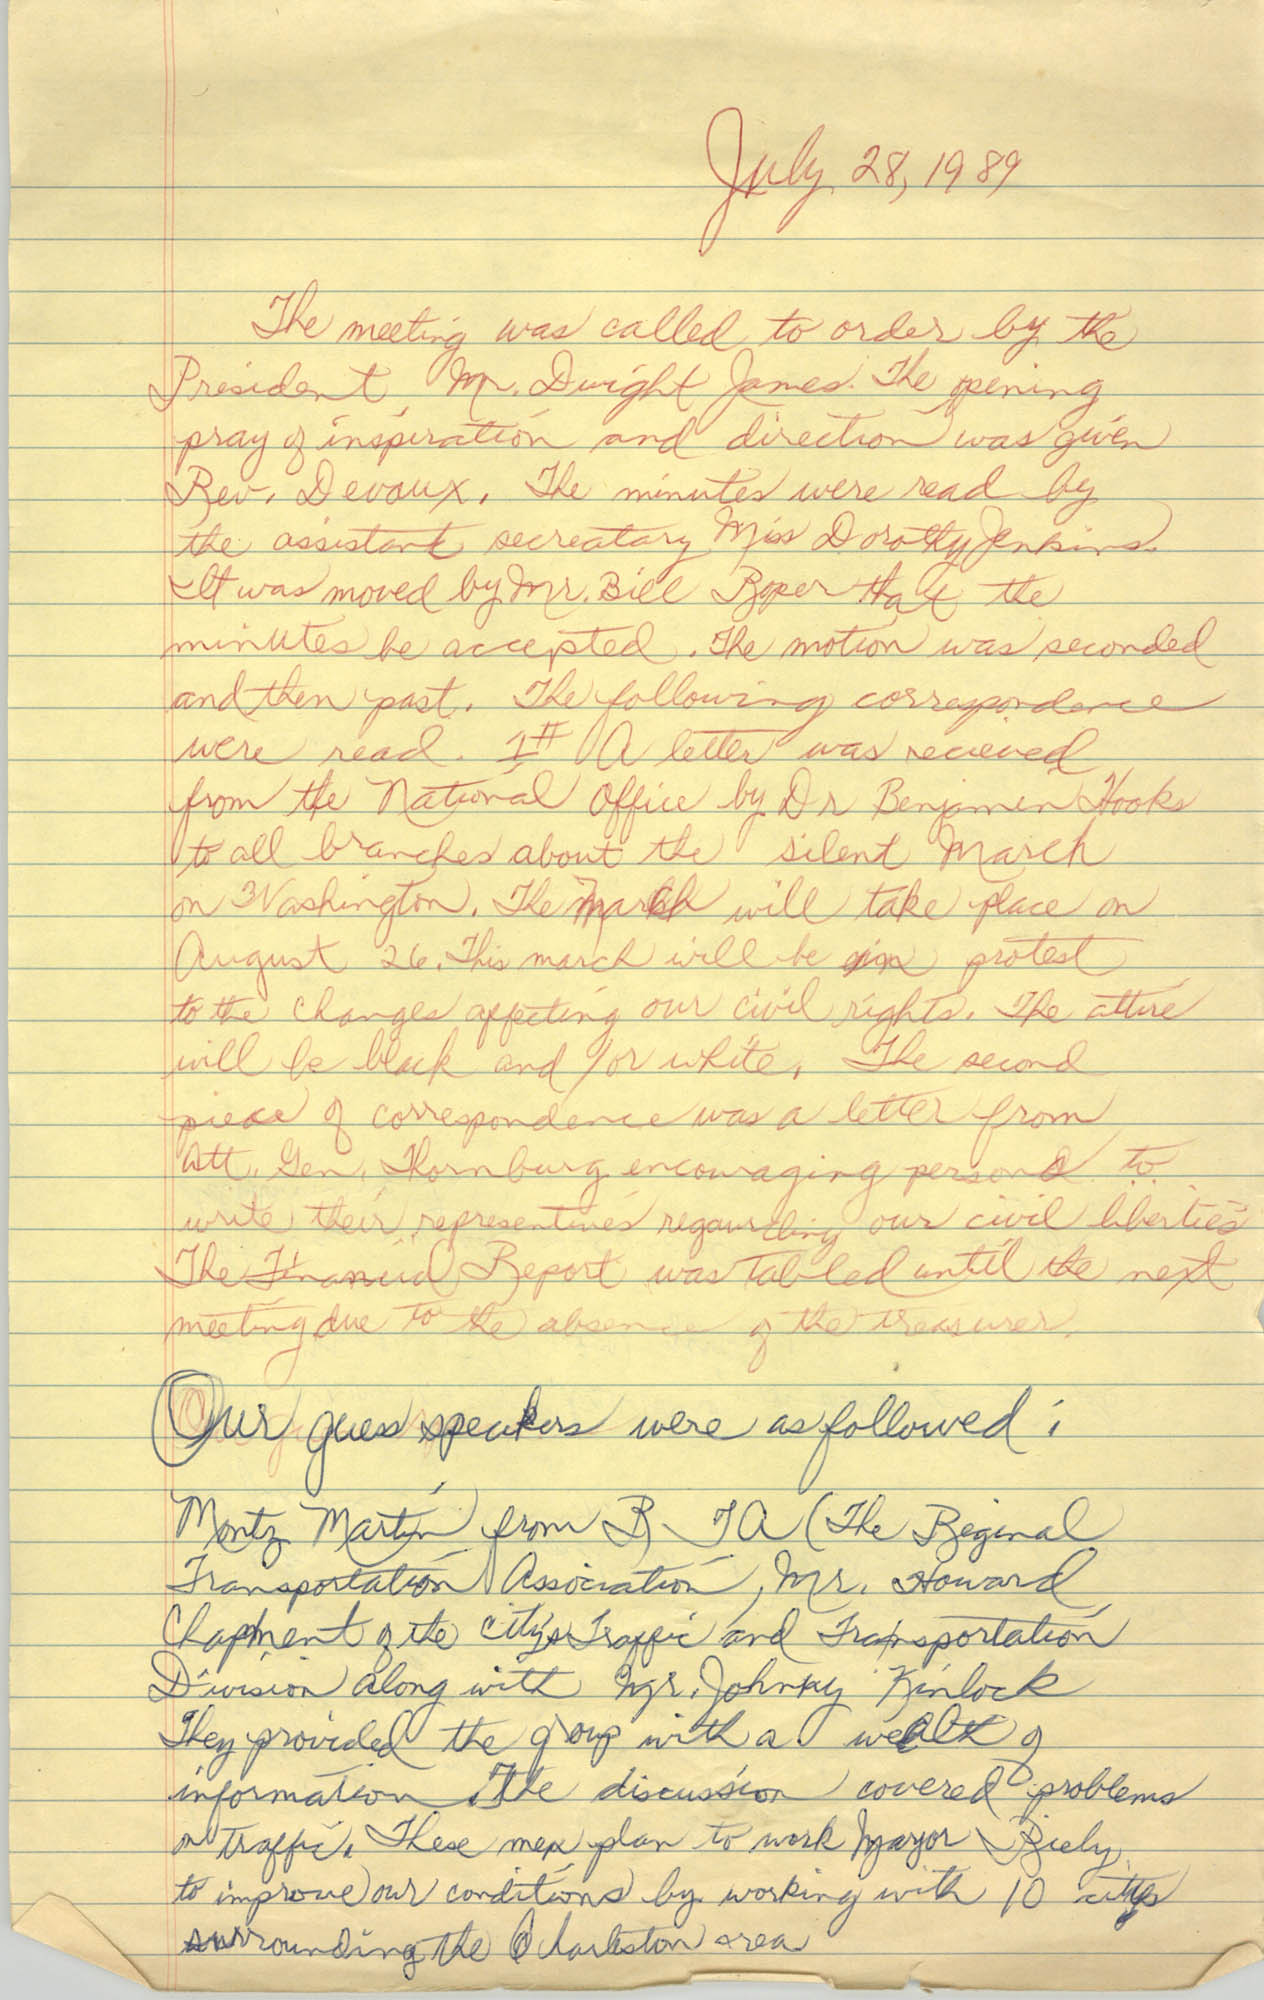 Minutes, Charleston Branch of the NAACP Meeting, July 28, 1989